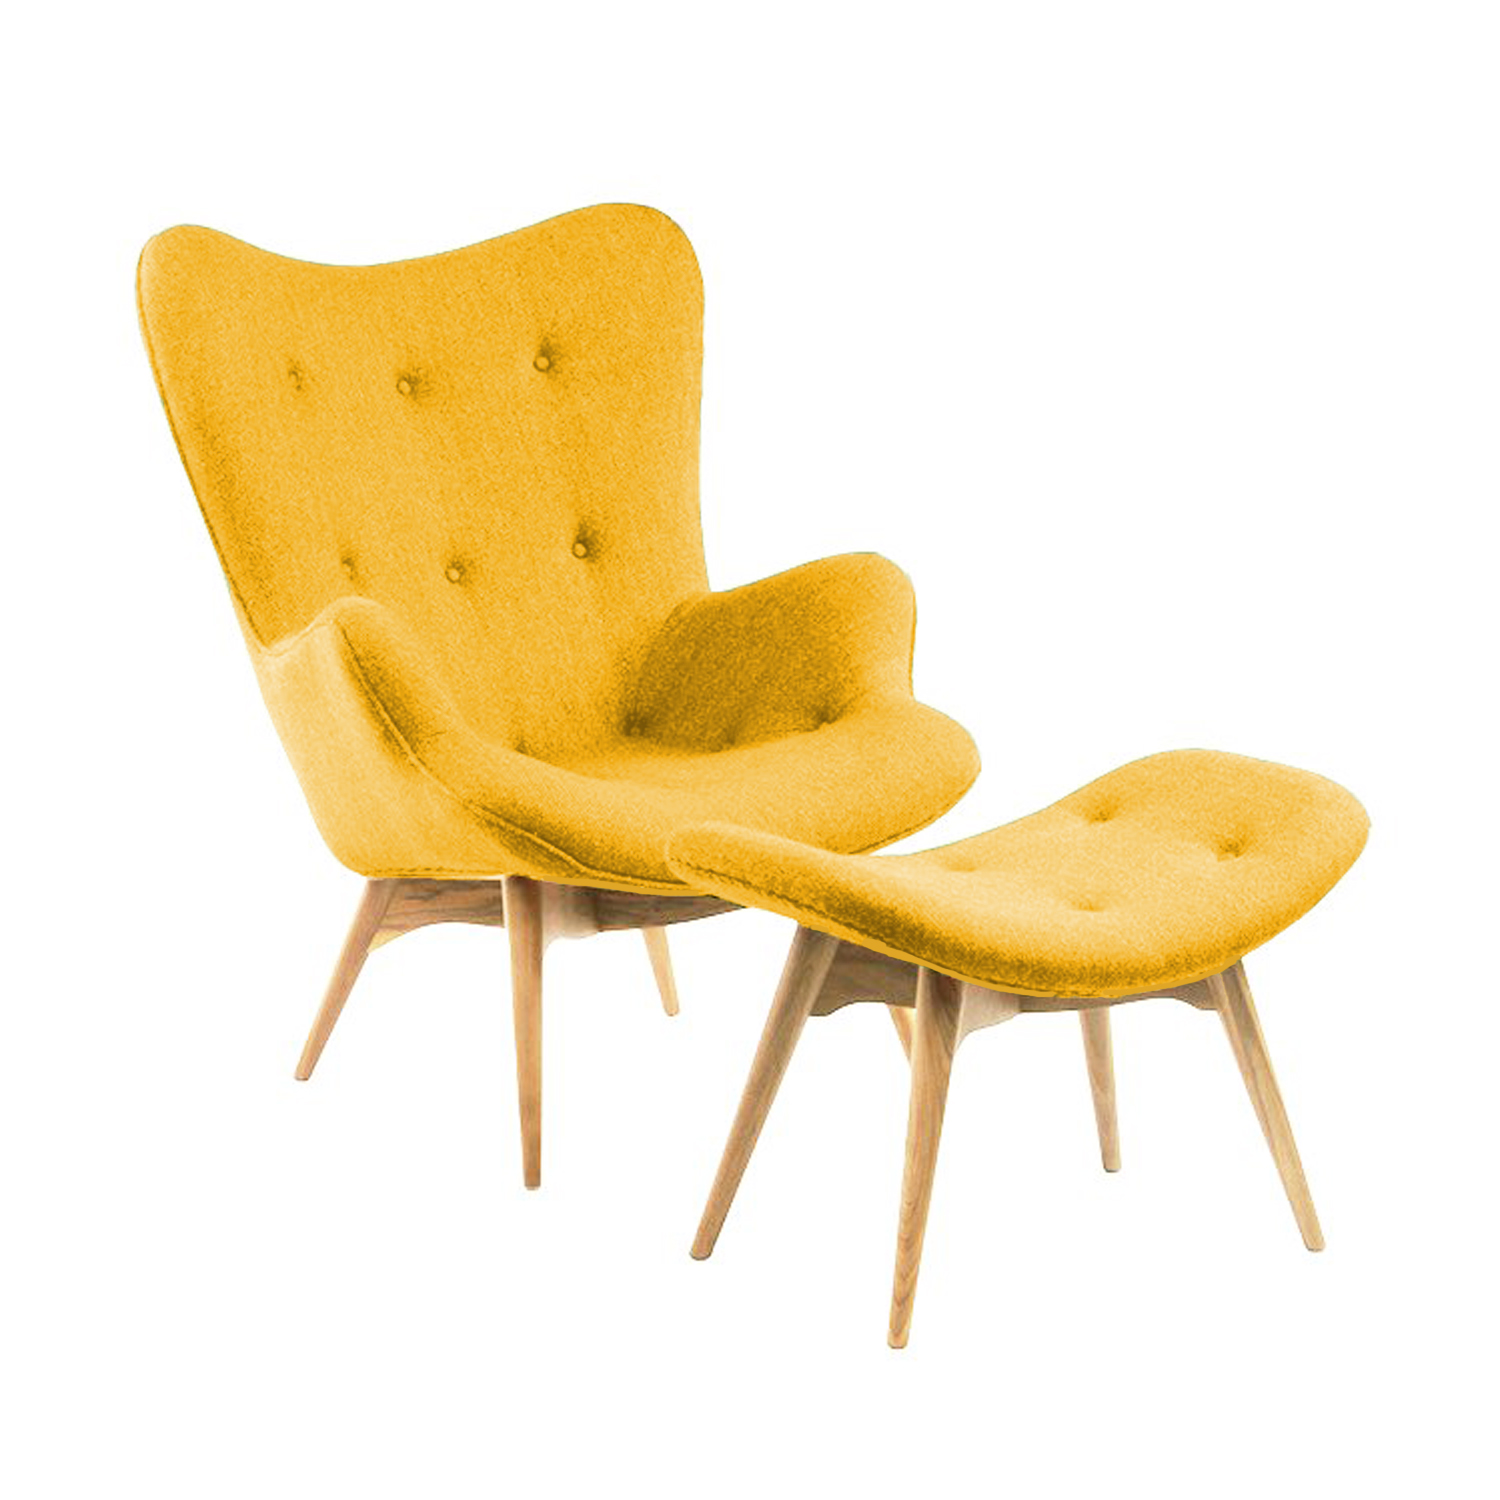 Uratex Armchair Furniture Source Philippines Arrived Mardi Gras